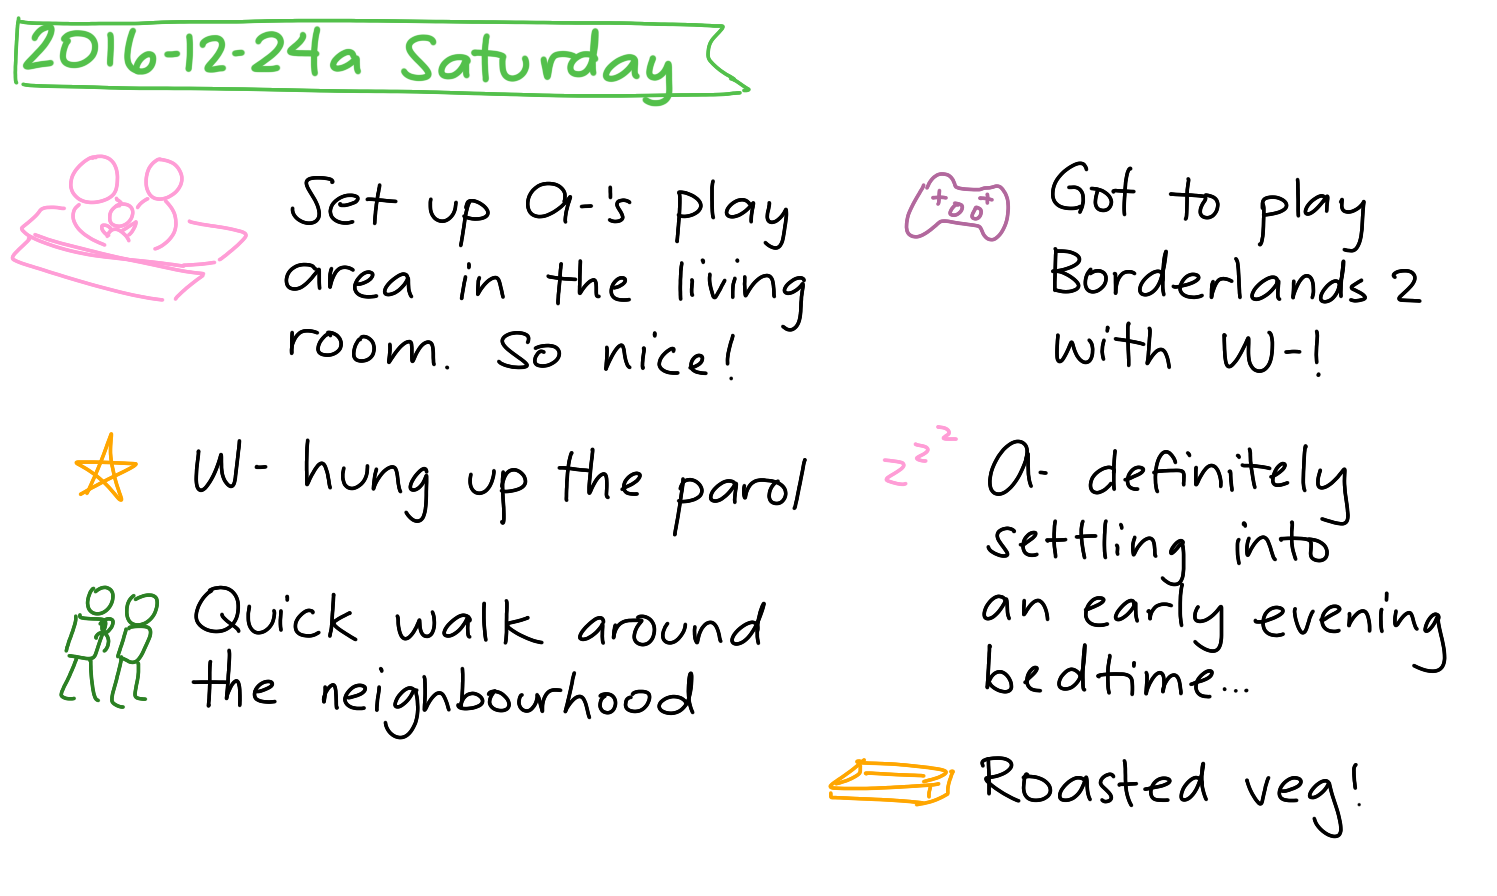 2016-12-24a Saturday #daily #journal.png